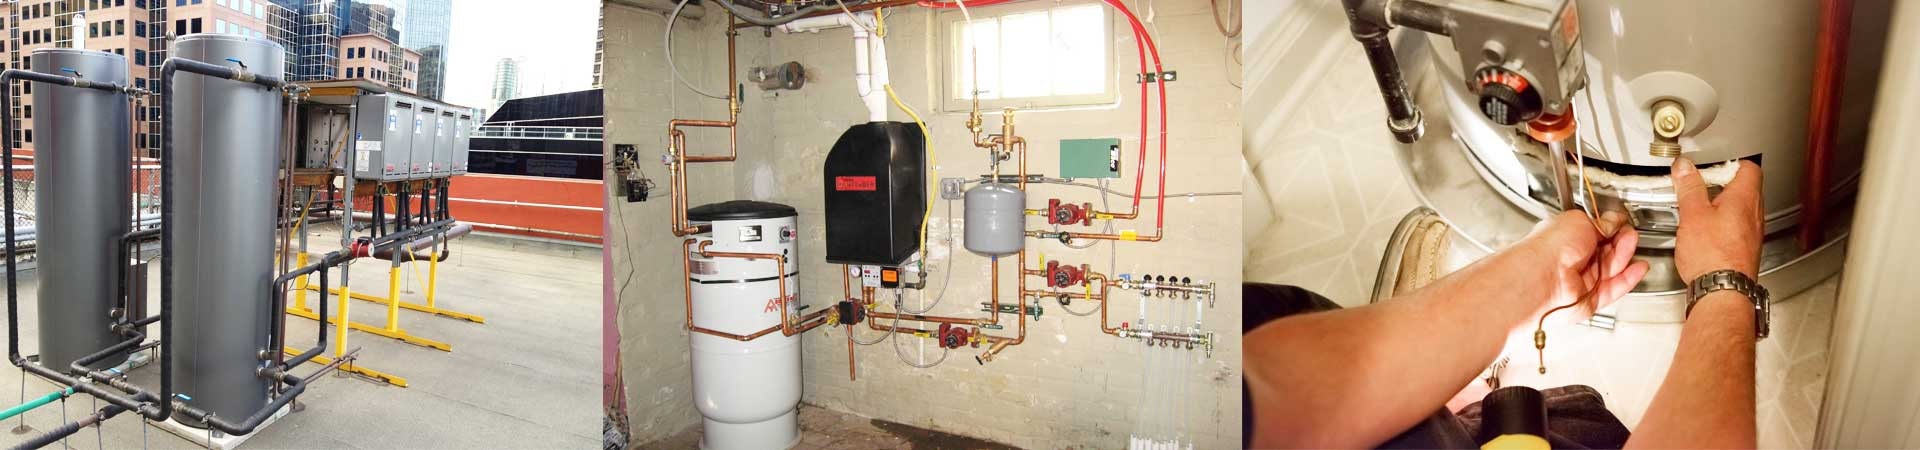 Hot Water Heating System Slider